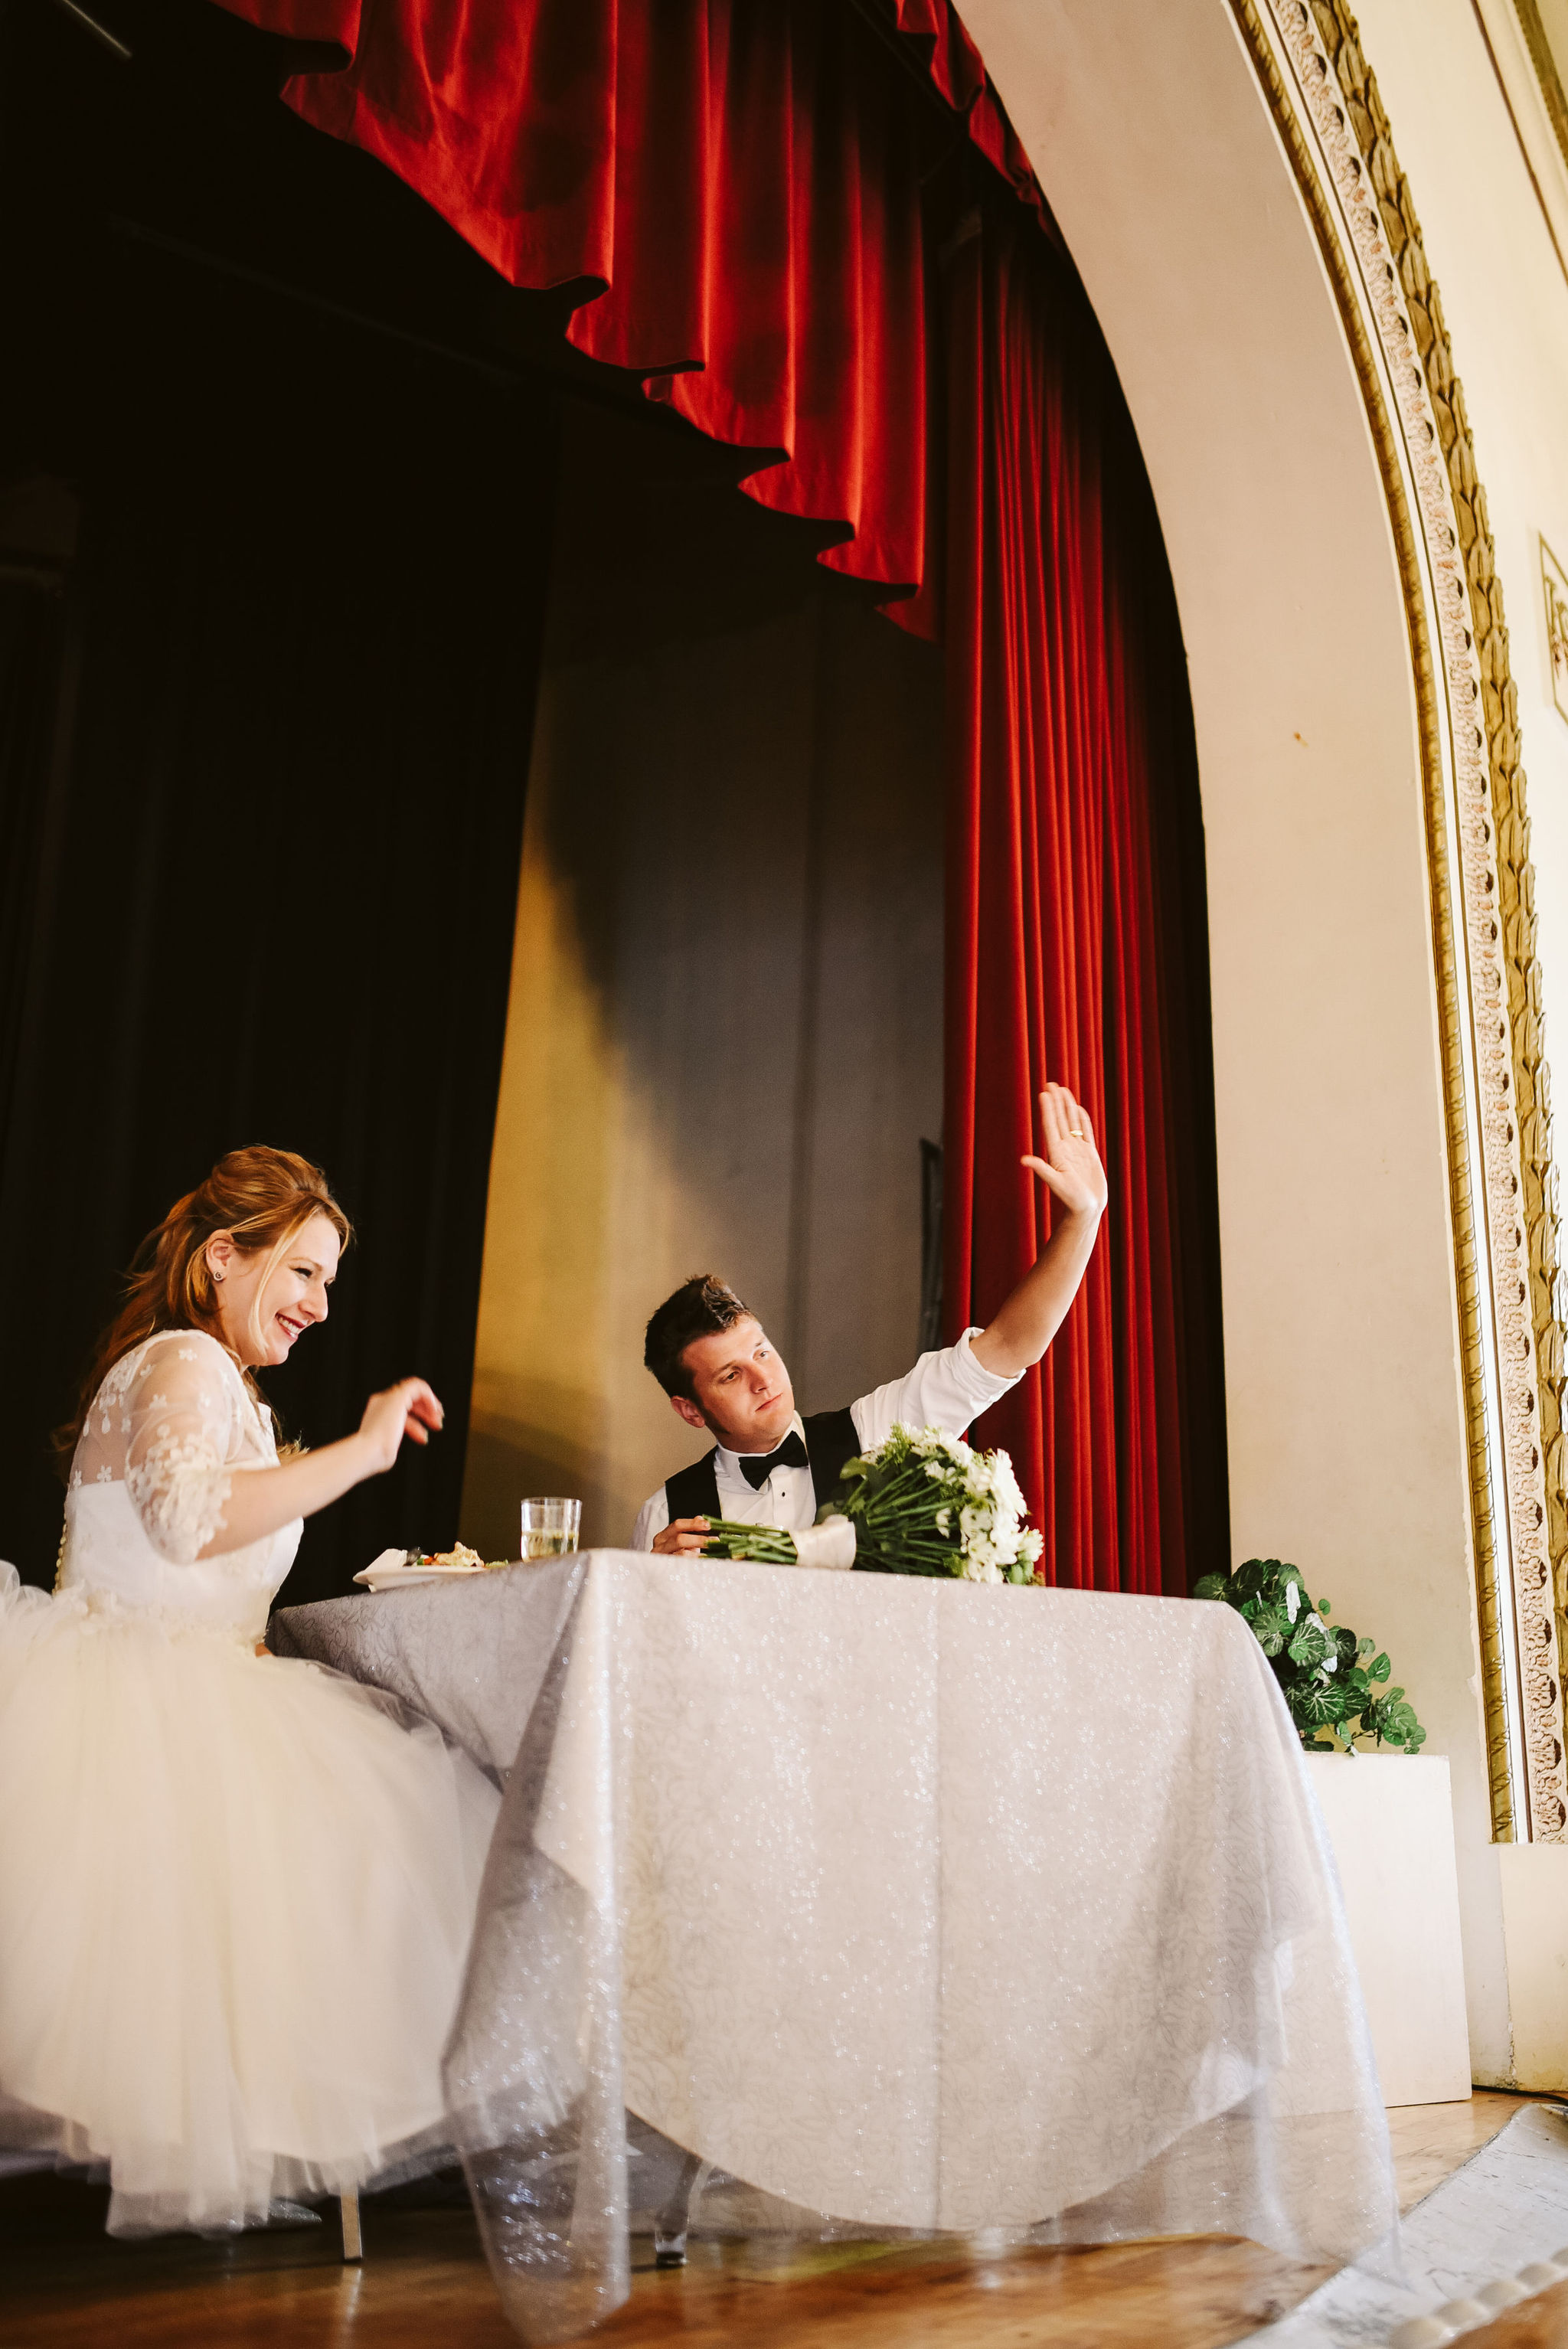 Baltimore, Lithuanian Dance Hall, Maryland Wedding Photographer, Vintage, Classic, 50s Style, Bride and Groom at Head Table, Couple Waving to Crowd at Reception